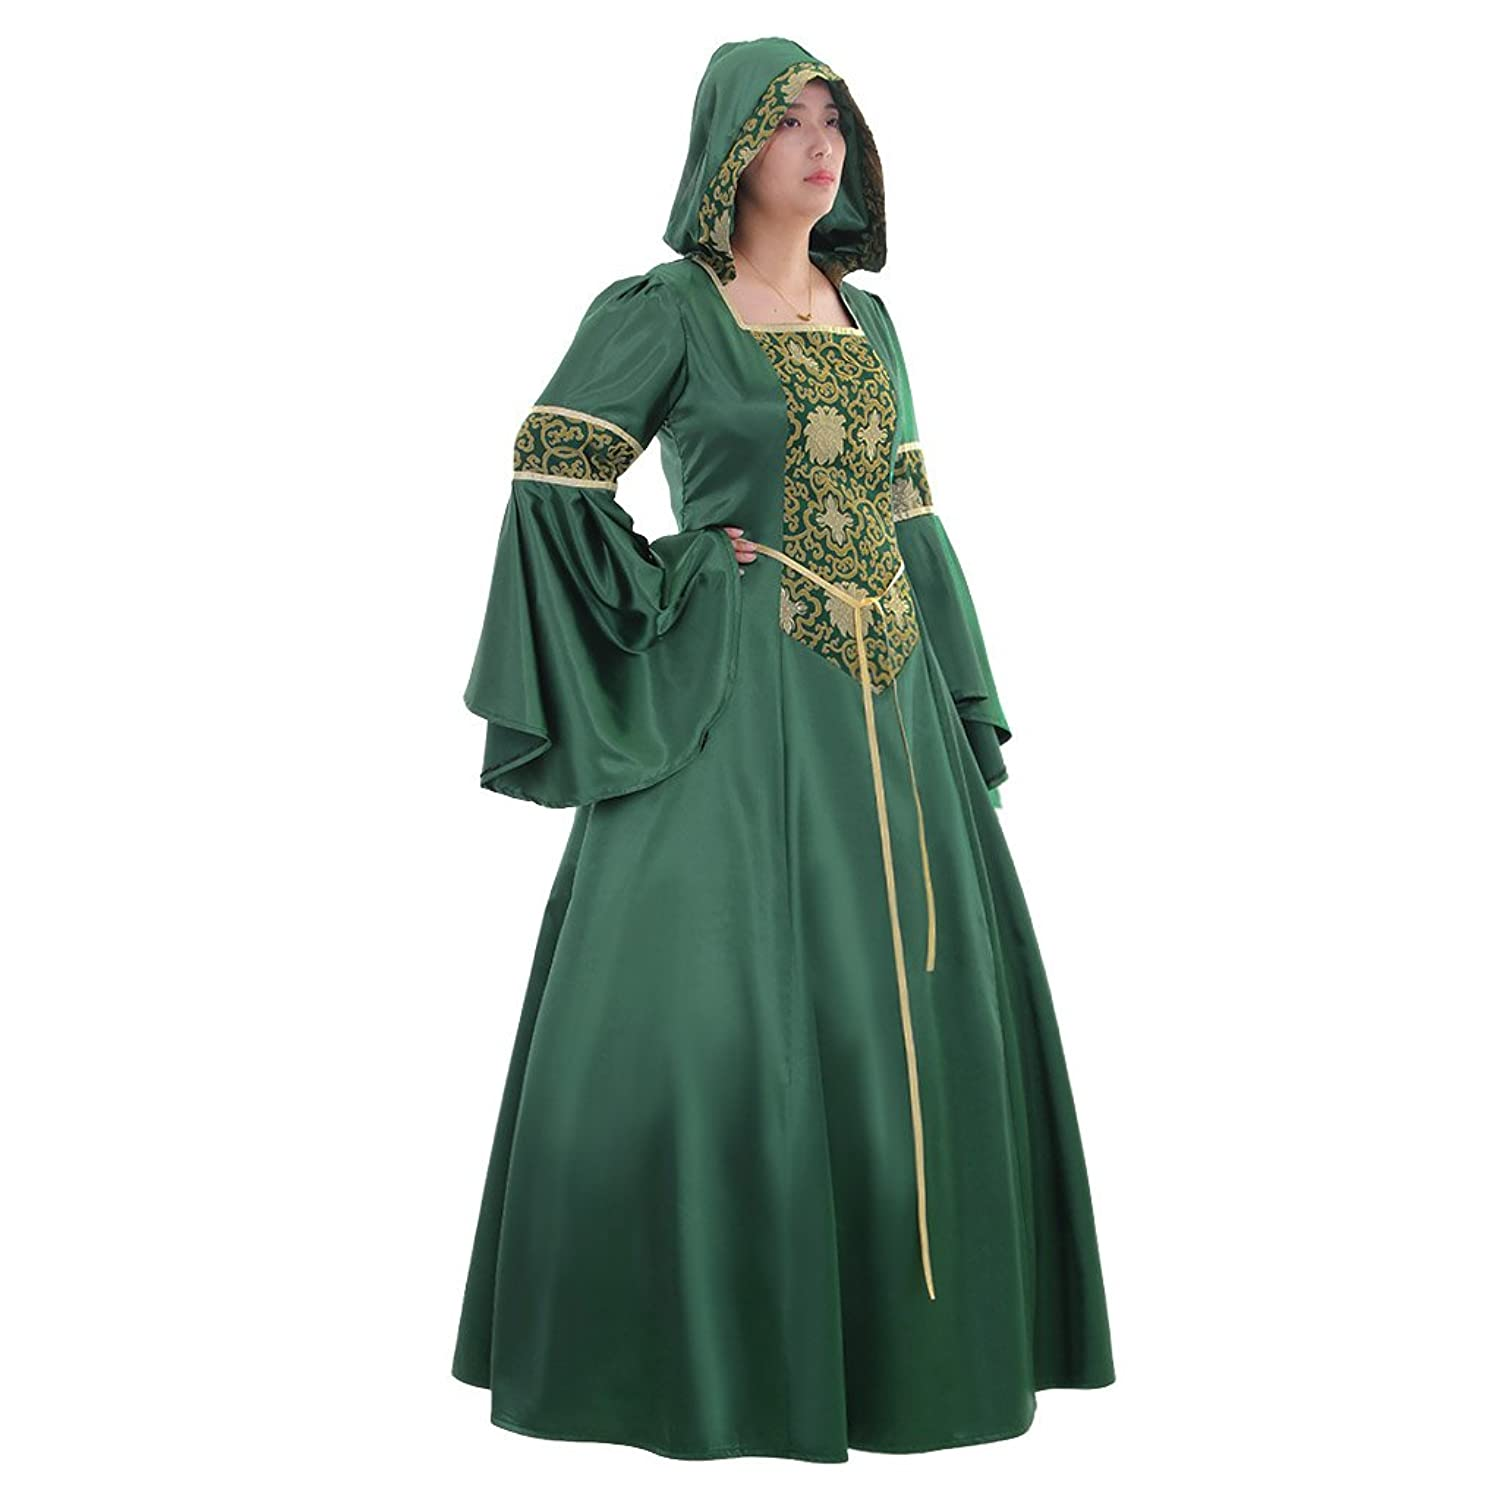 PLUS DELUXE MEDIEVAL//LARP LADY Green /& Gold fancy dress outfit sizes 8